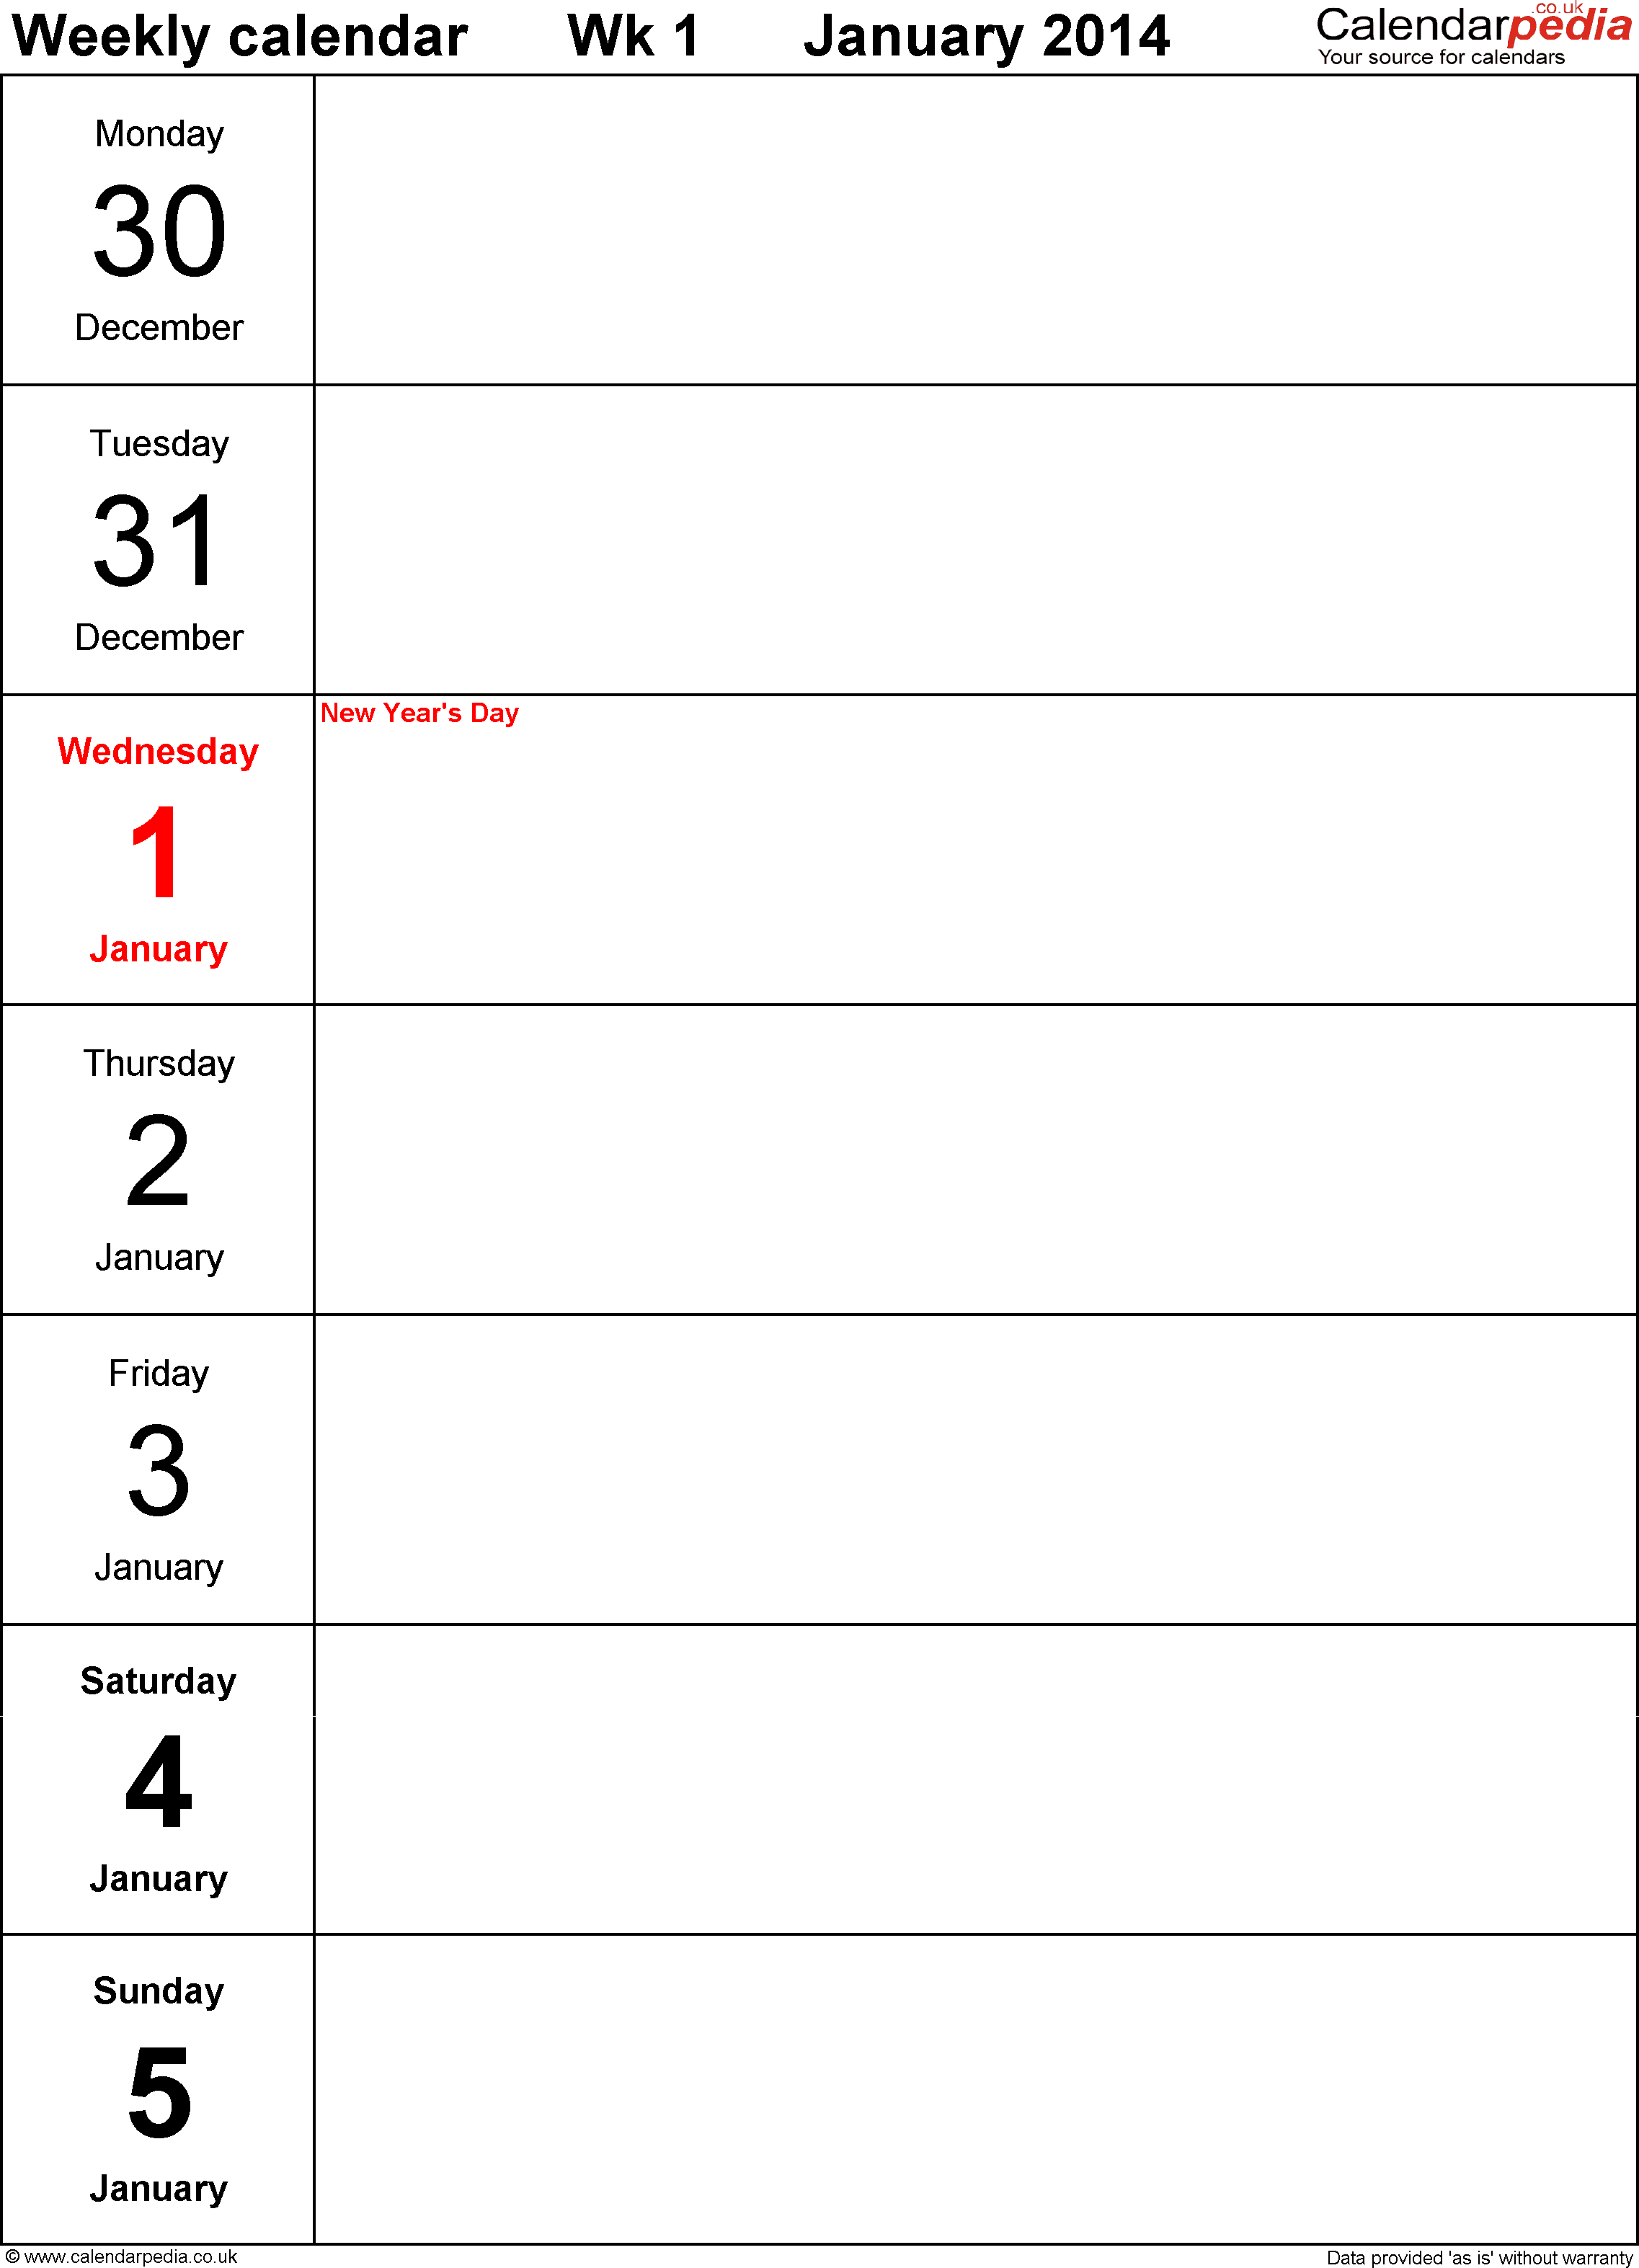 Excel template 4: Weekly calendar 2014, portrait orientation, days vertically, 53 pages (1 calendar week on 1 page)